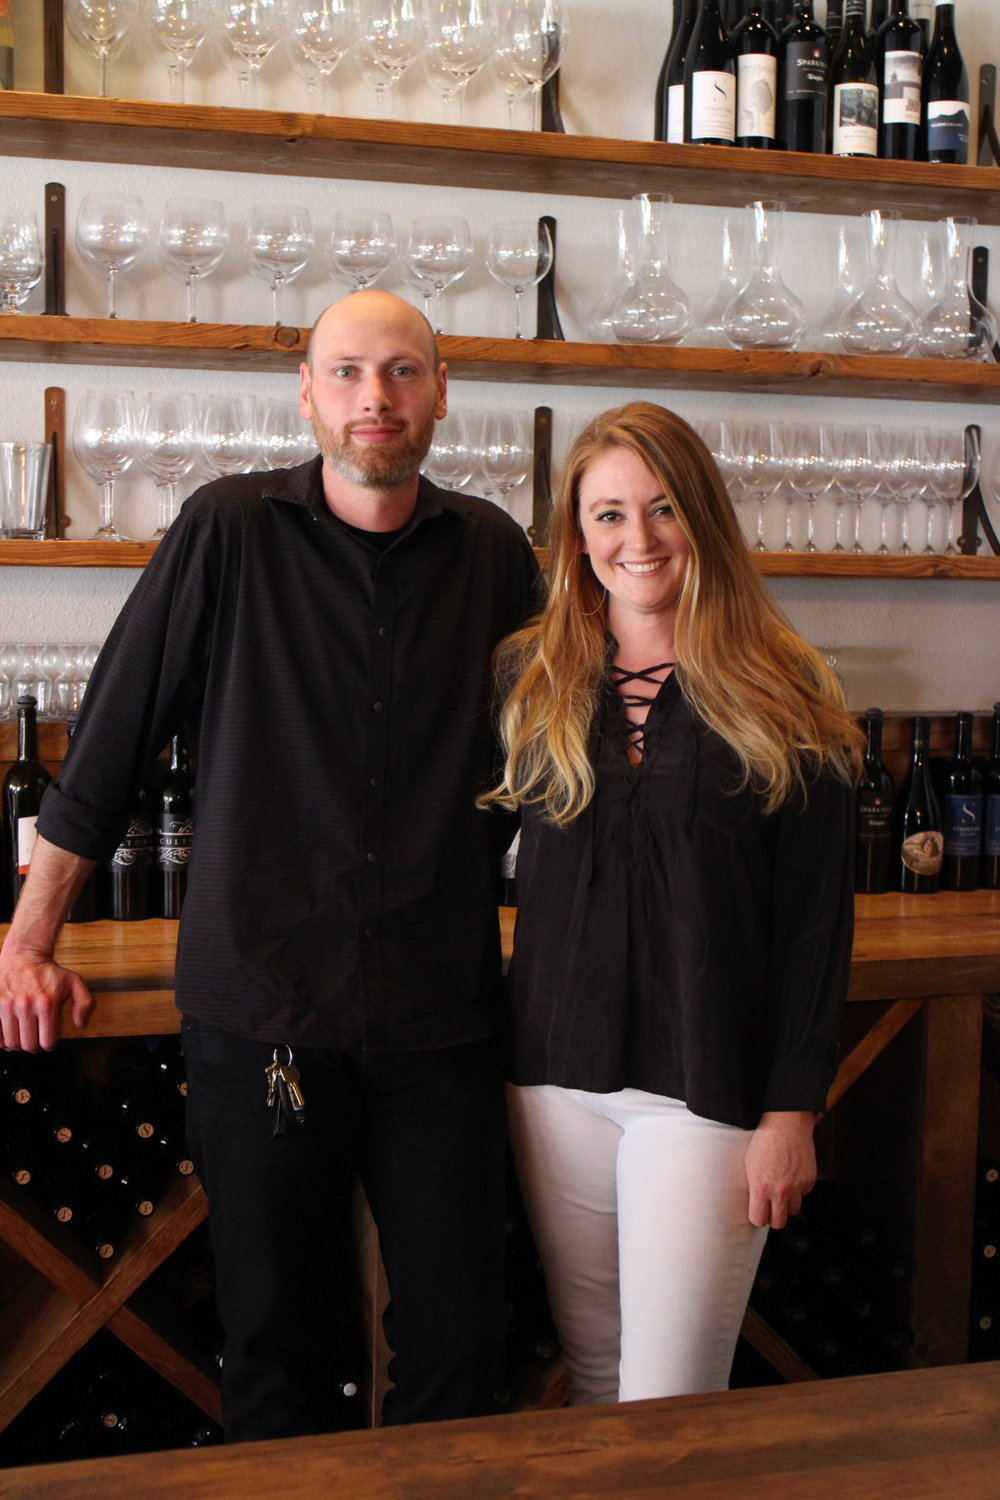 Owners of Norwood Wine Bar: Brother and sister, Joshua Thaut & Megan Collyer -